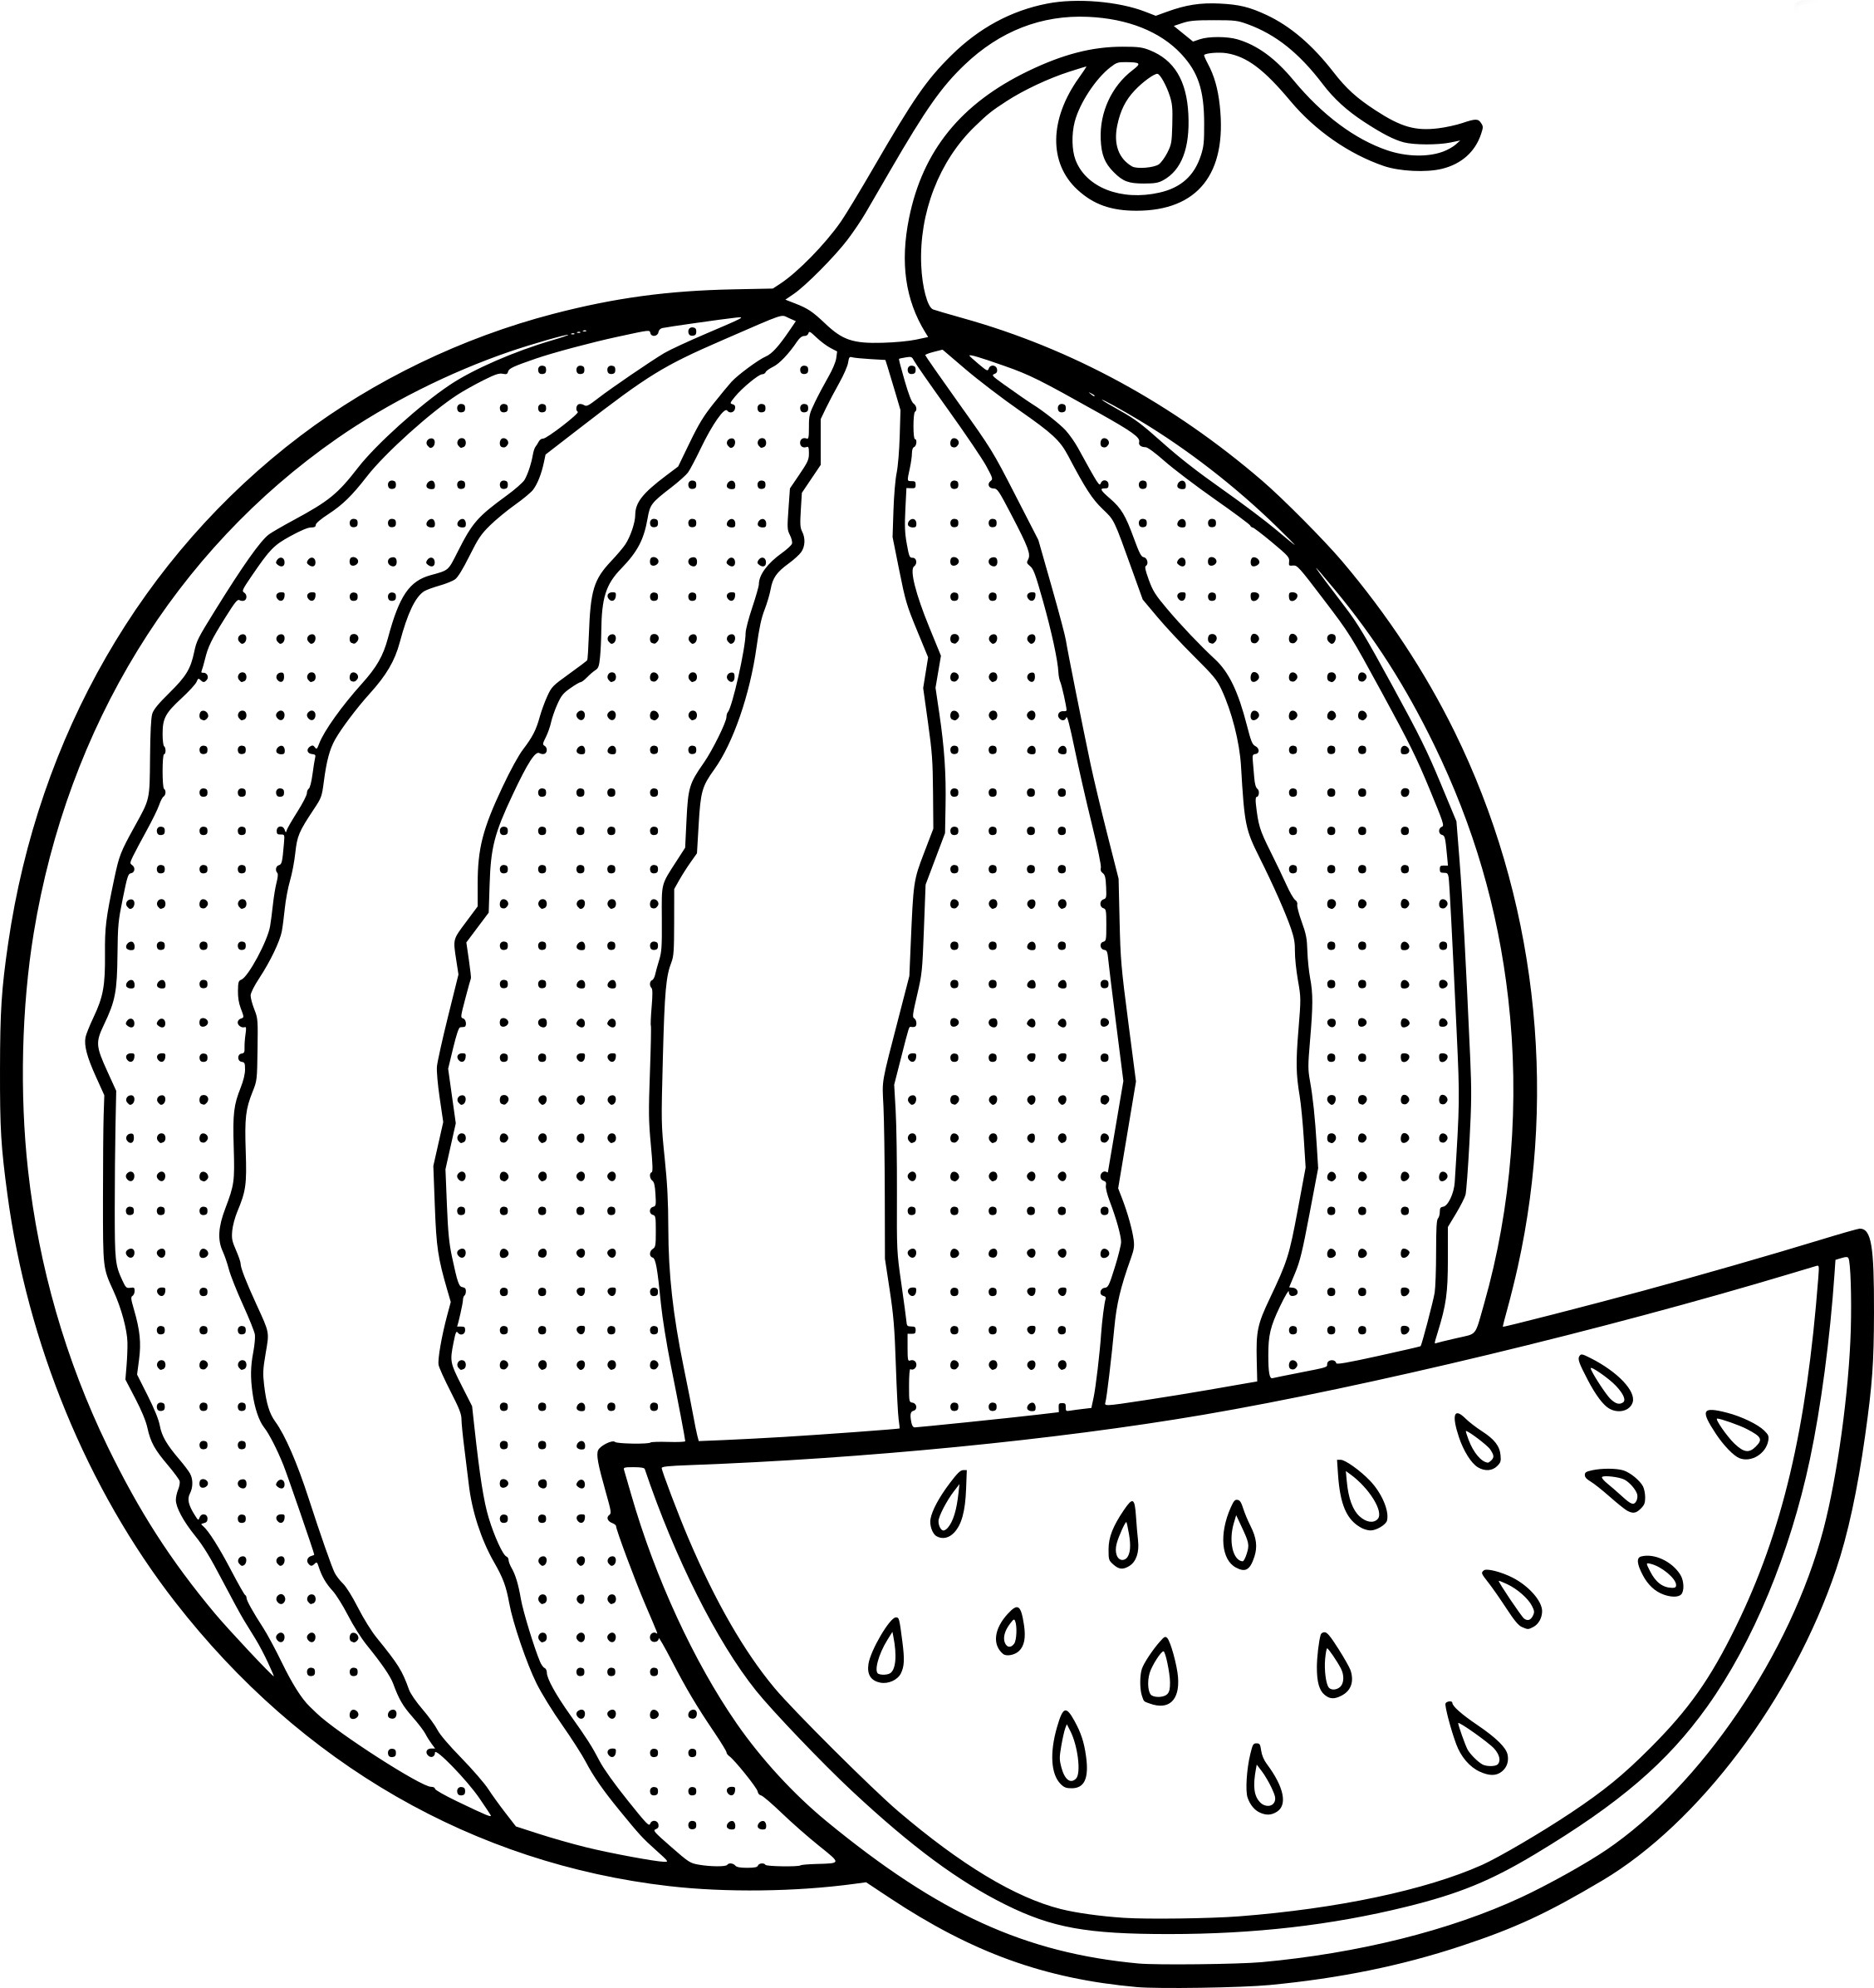 2256x2393 Awesome Watermelons Coloring Pages Collection Printable Coloring